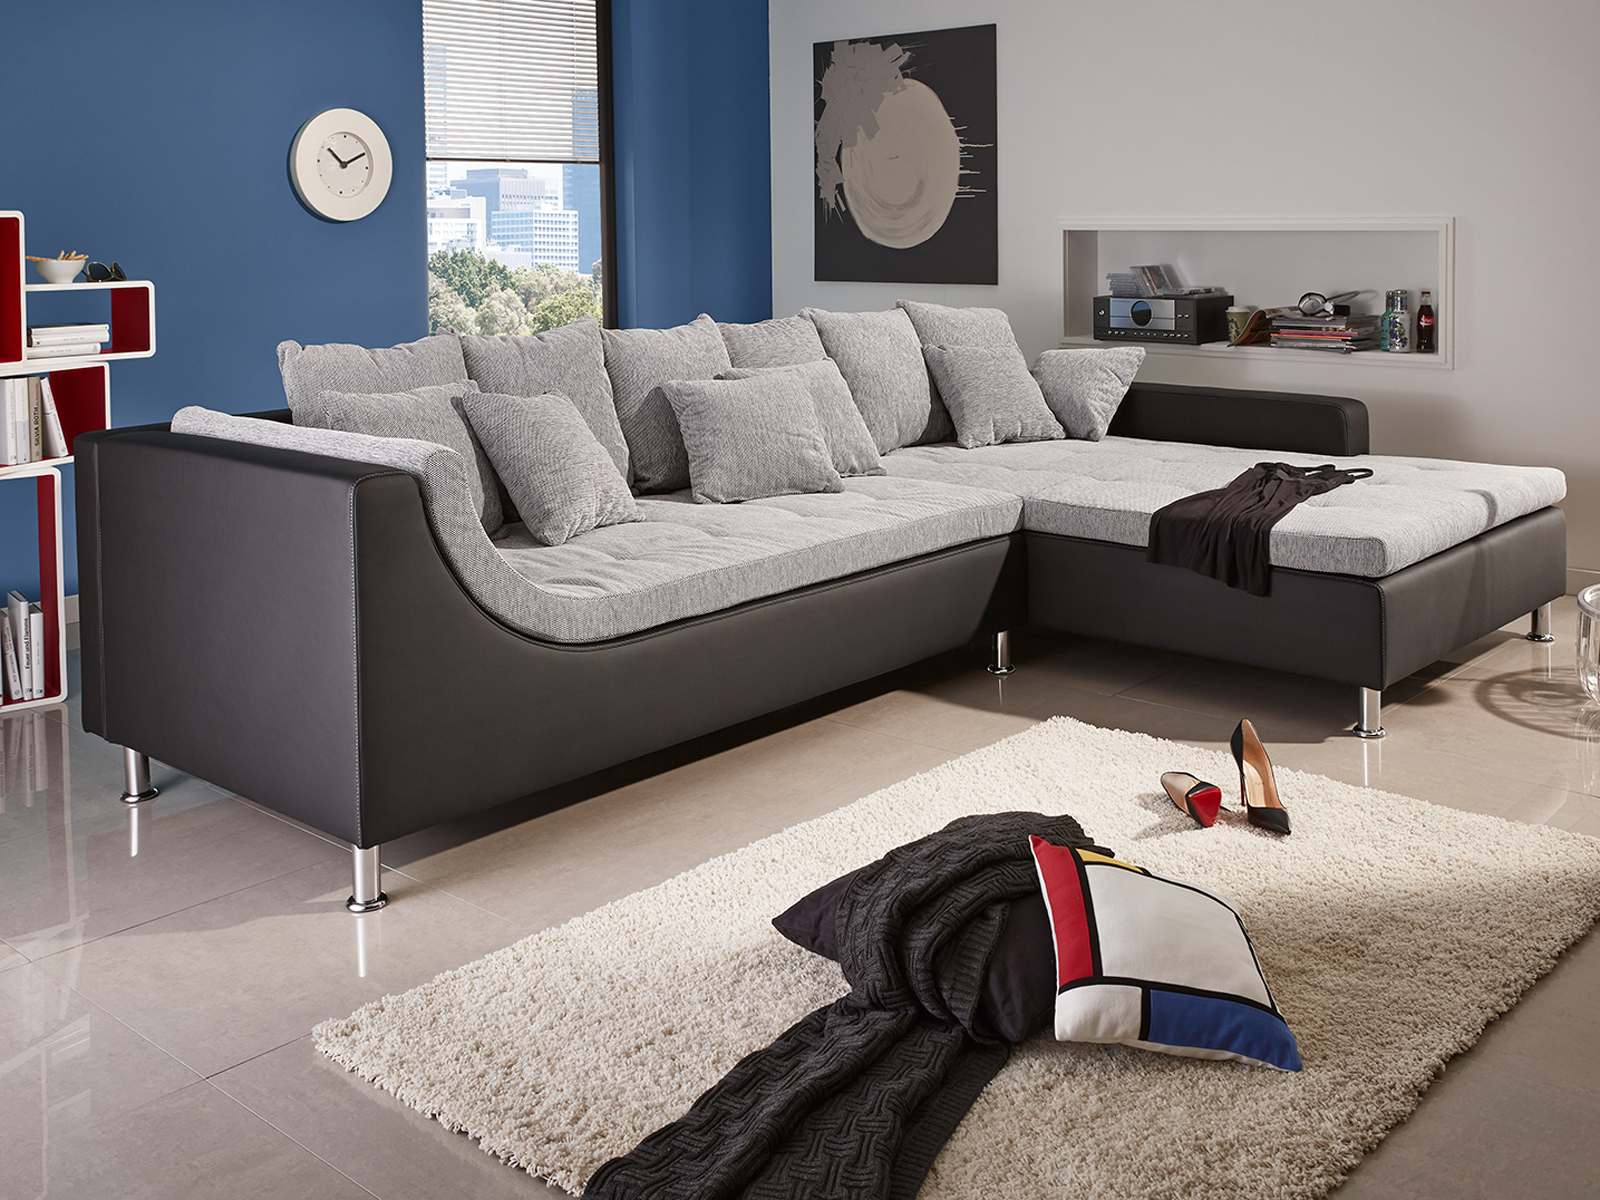 wohnlandschaft montego ecksofa sofa couch mit ottomane mit kissen und hocker. Black Bedroom Furniture Sets. Home Design Ideas